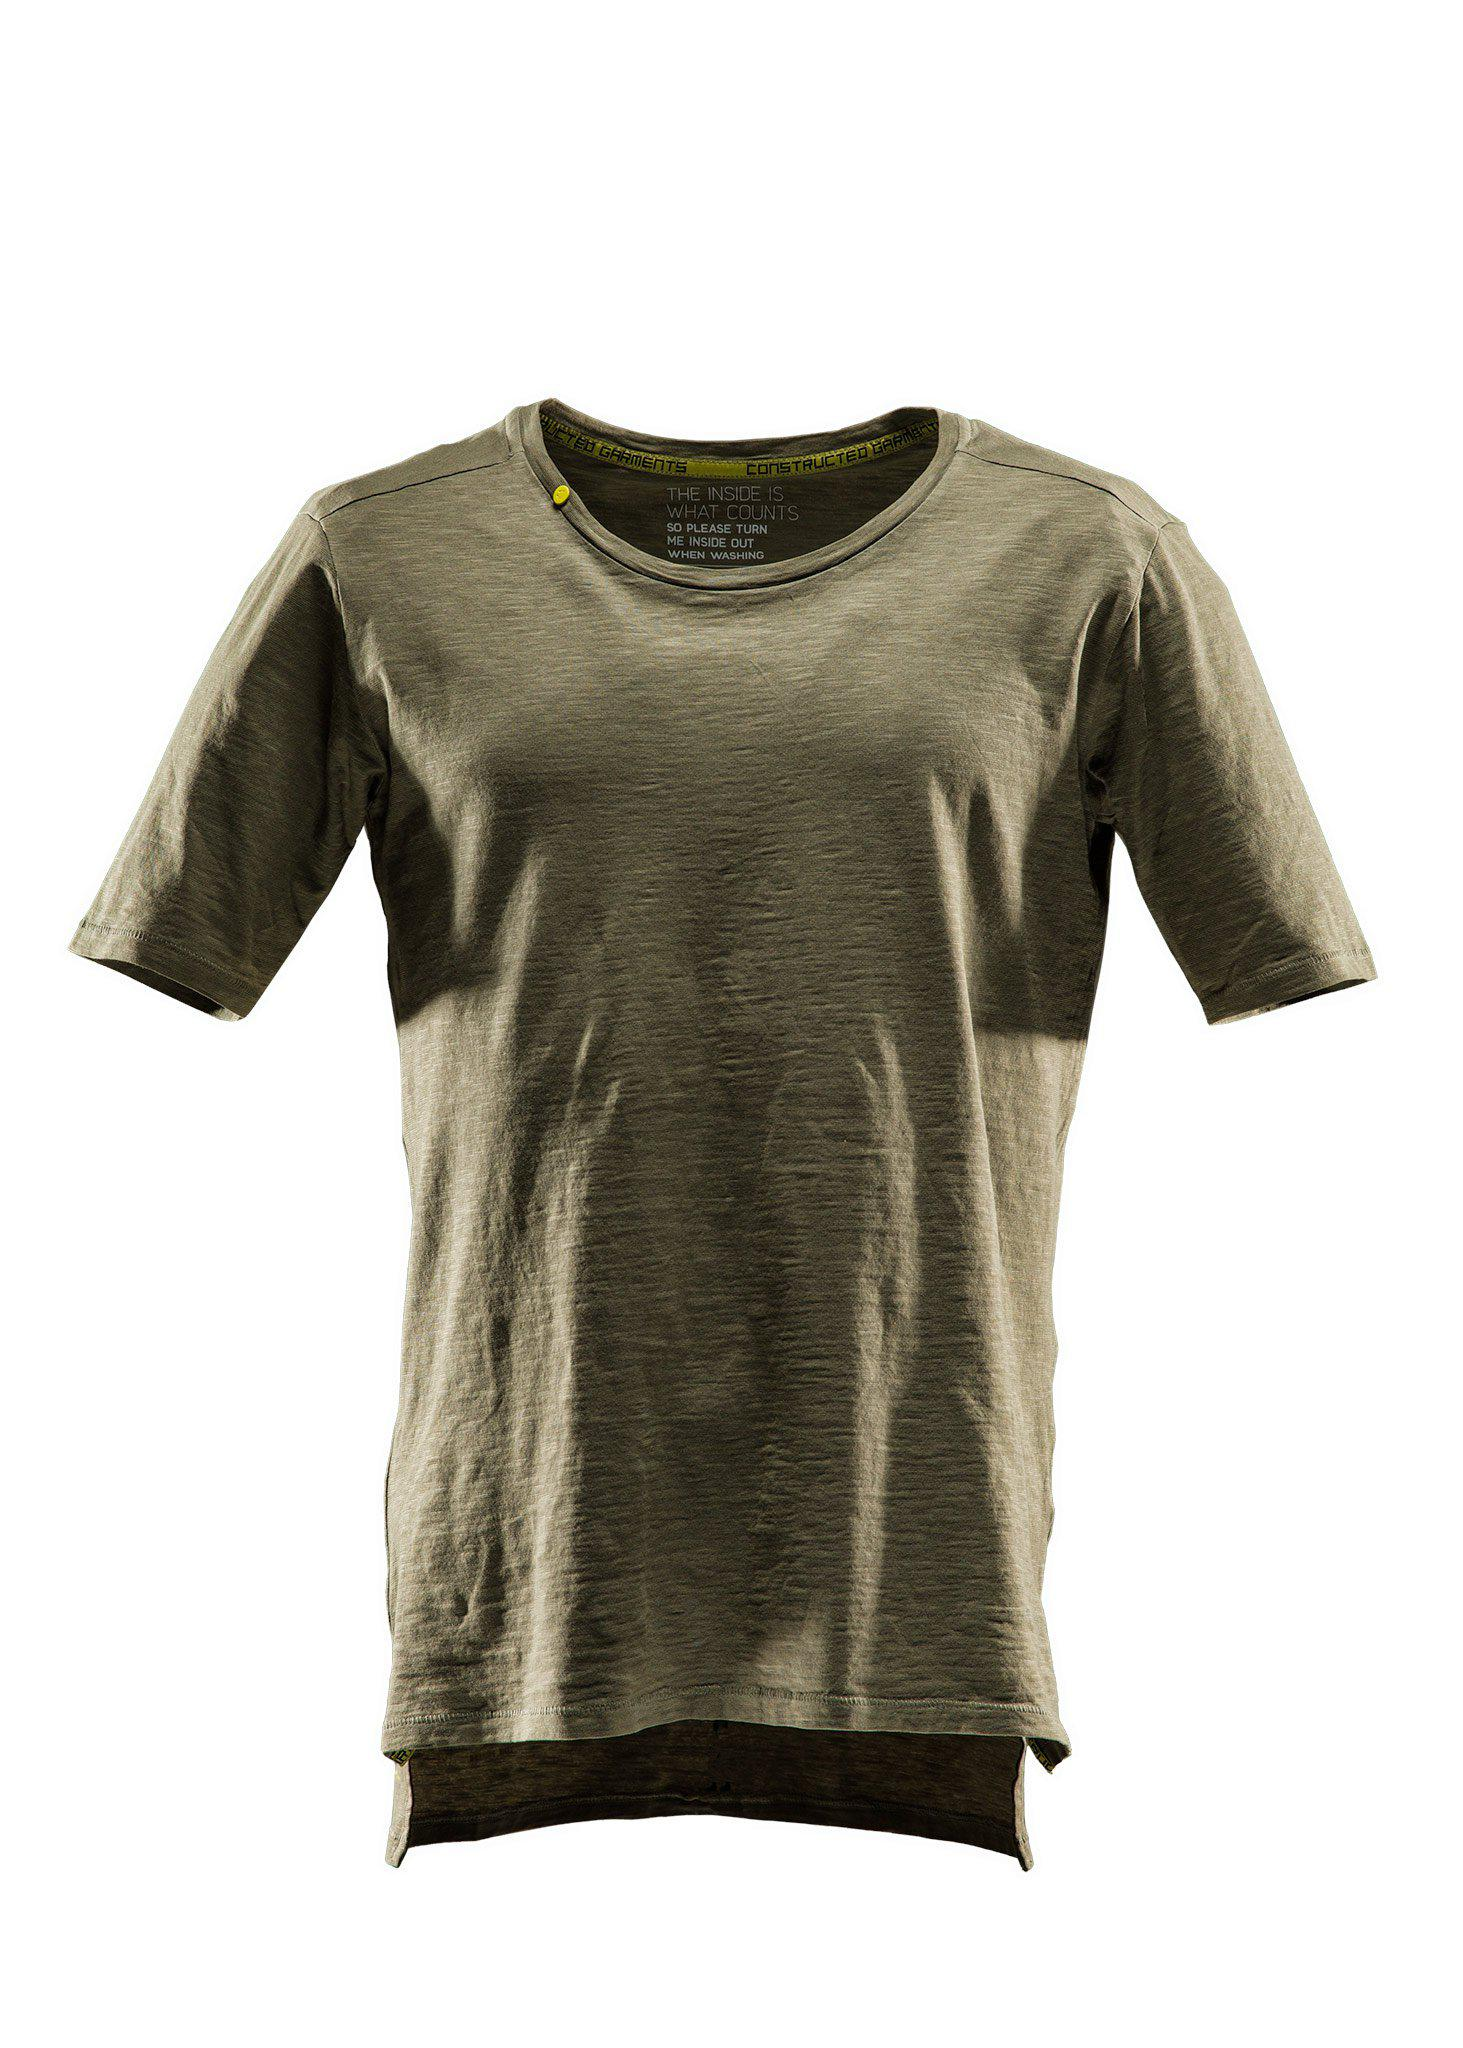 Comfort tee SS, T-shirt short sleeve, Burnt olive green, S